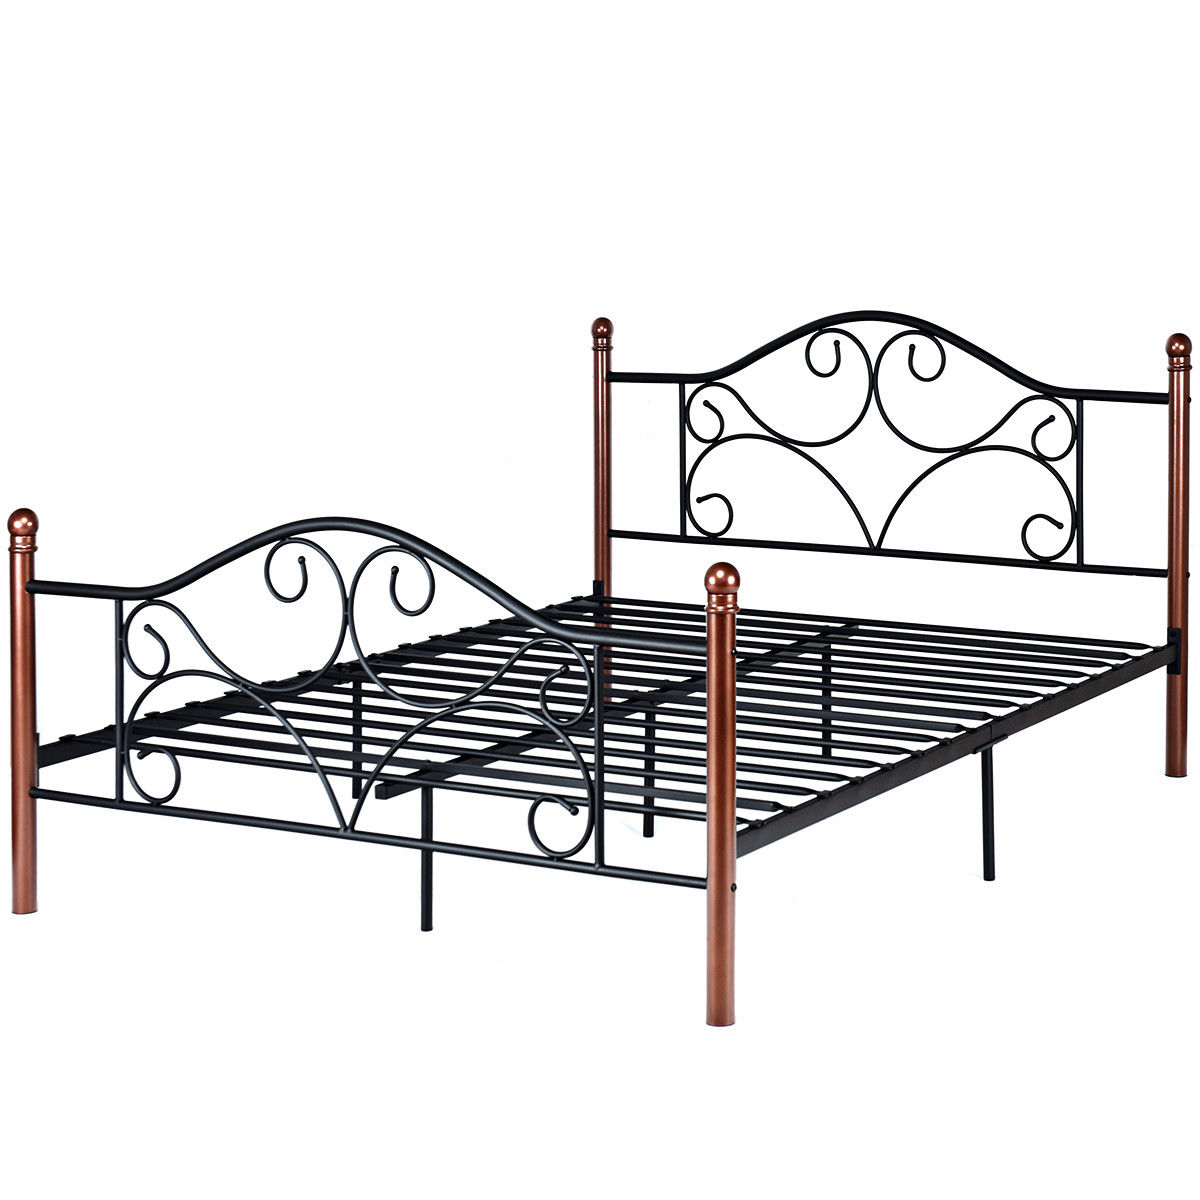 Queen Bed Frame Costway Queen Size Steel Bed Frame Platform Stable Metal Slats Headboard Footboard Black